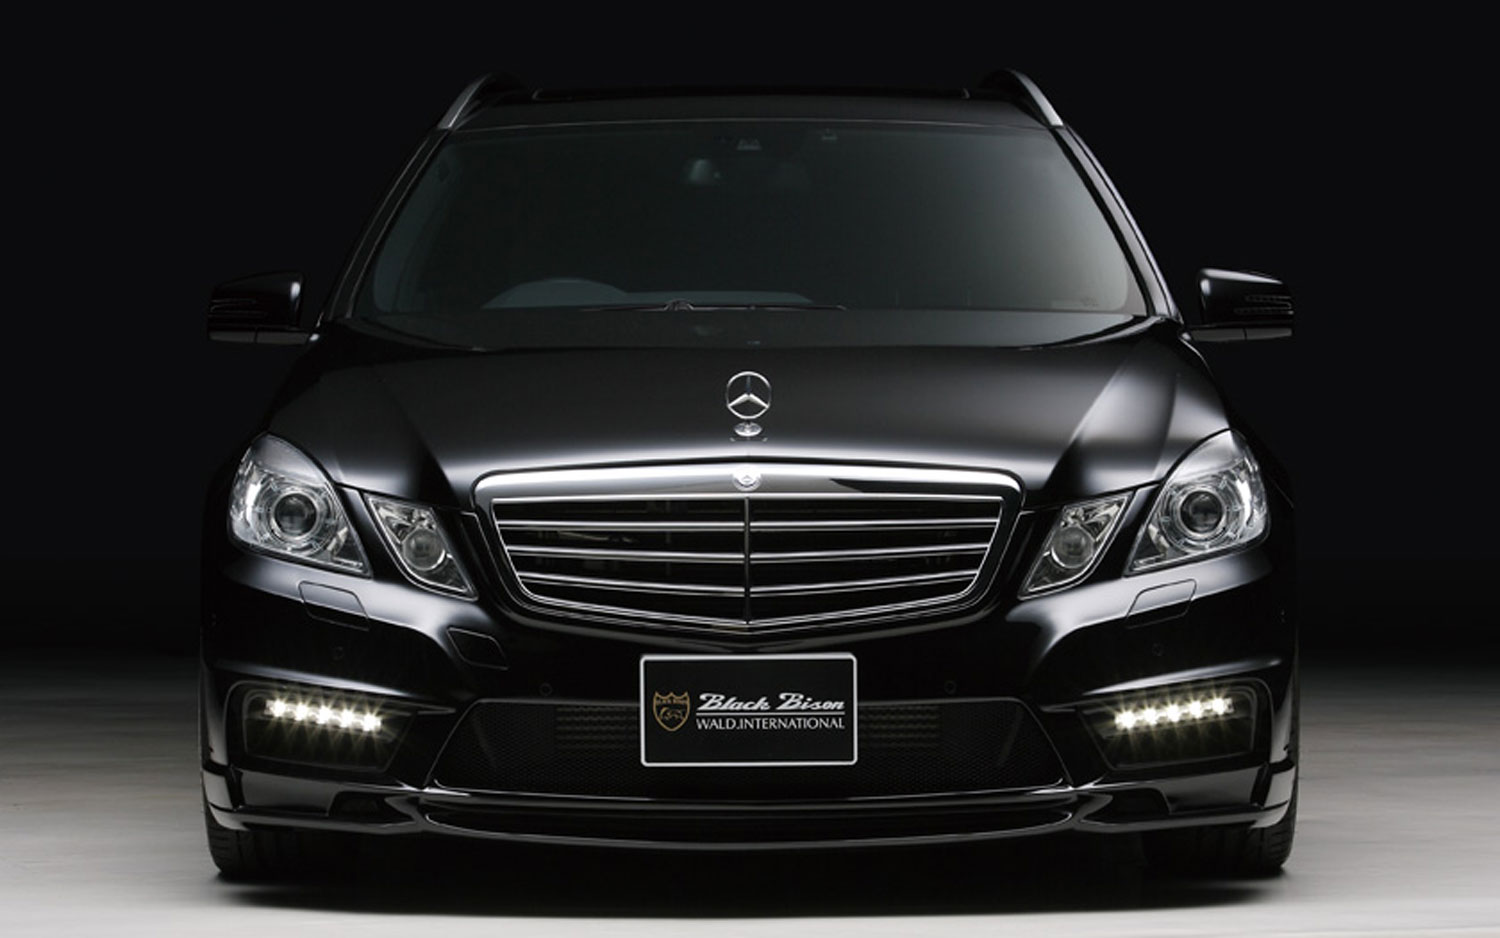 Wald international pimps out mercedes benz e class wagon for 2012 mercedes benz e class e350